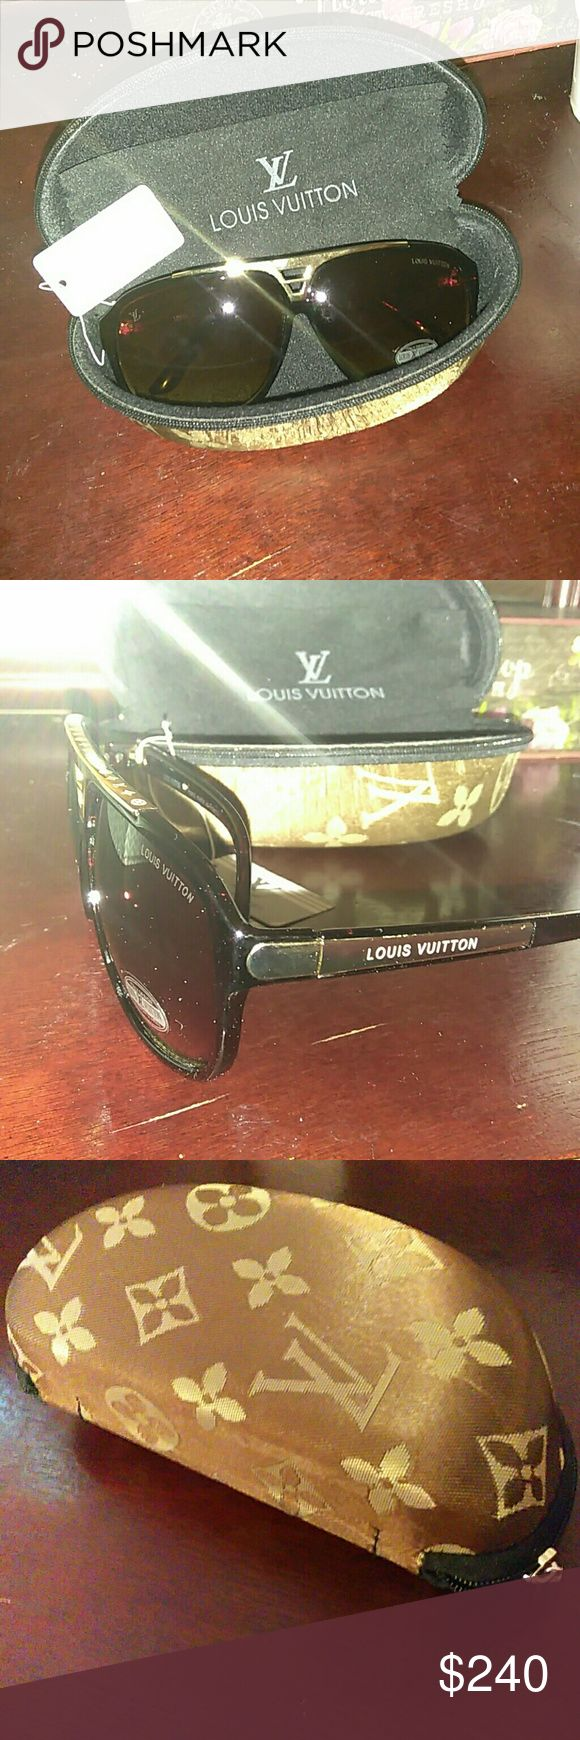 Louis Vuitton Evidence Sunglasses design Ship same day 🚛 ❗ Excellent condition ❗ NWT, Comes w/ case and cleaning cloth❗ NO TRADES, NO EMAILS ❗ ONLY VIA POSHMARK ❗ Louis Vuitton Accessories Sunglasses